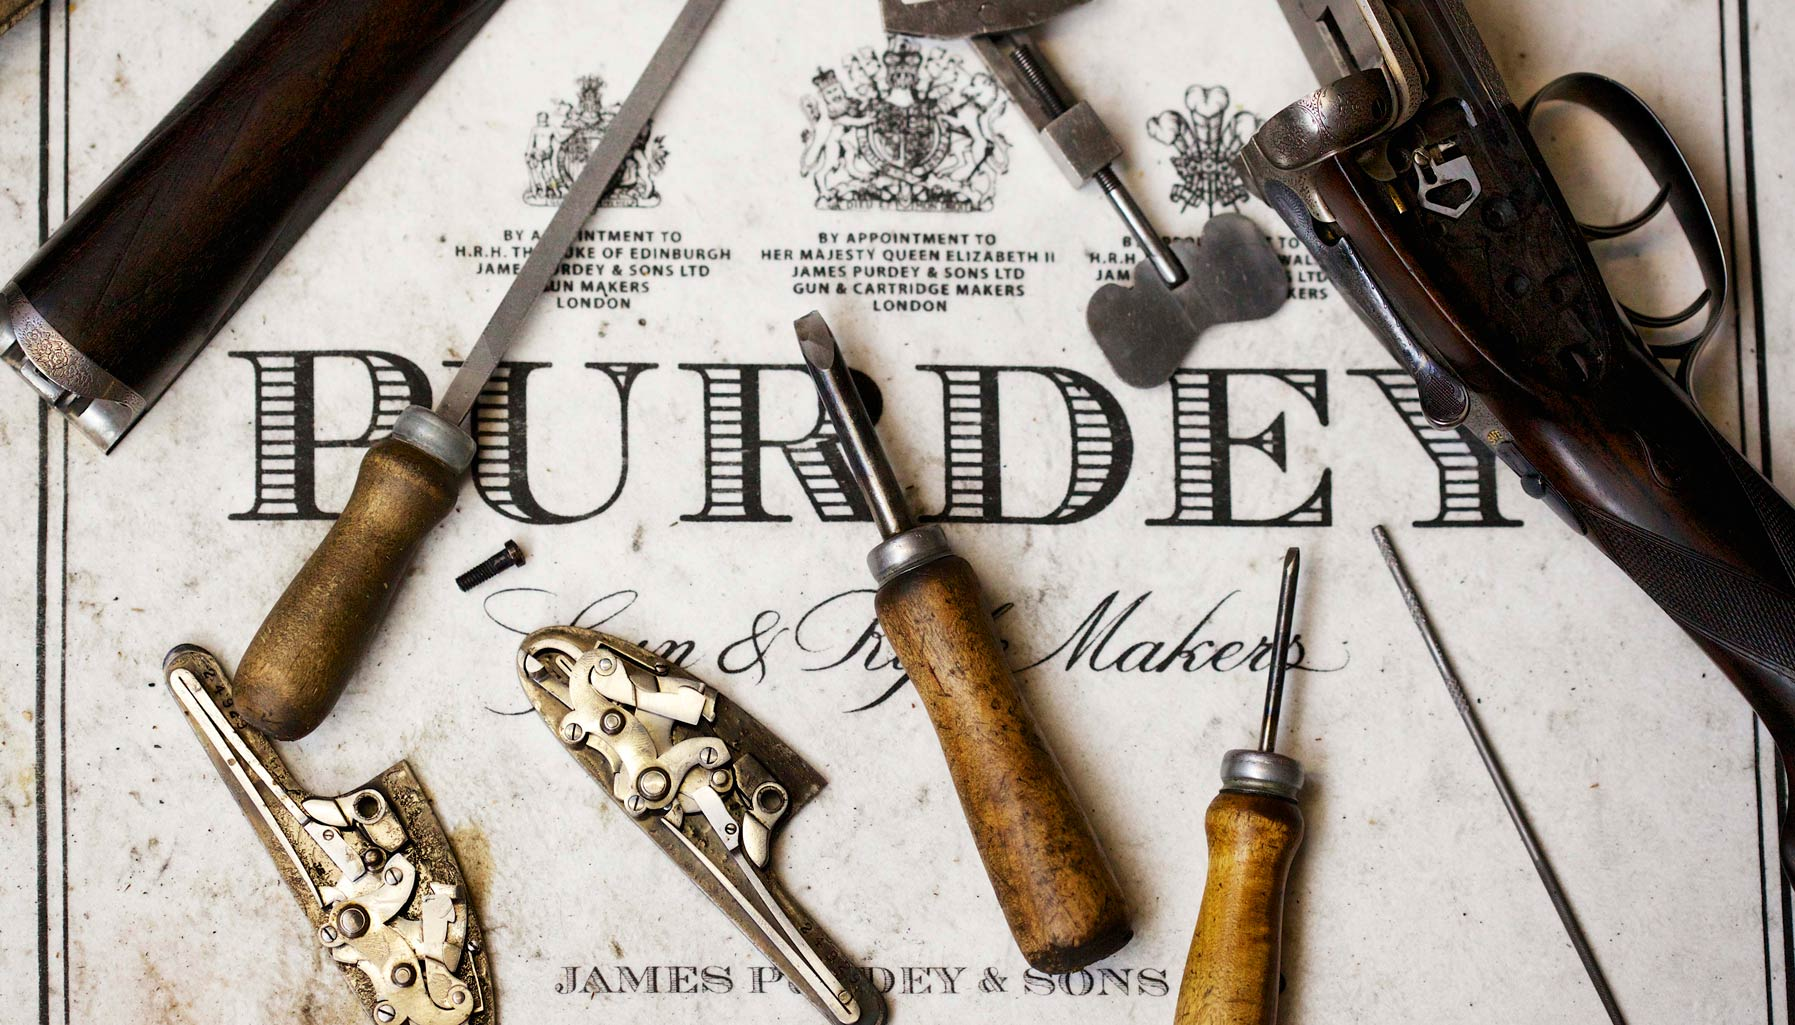 Hands up: These Purdey guns are crafted to be admired, not used